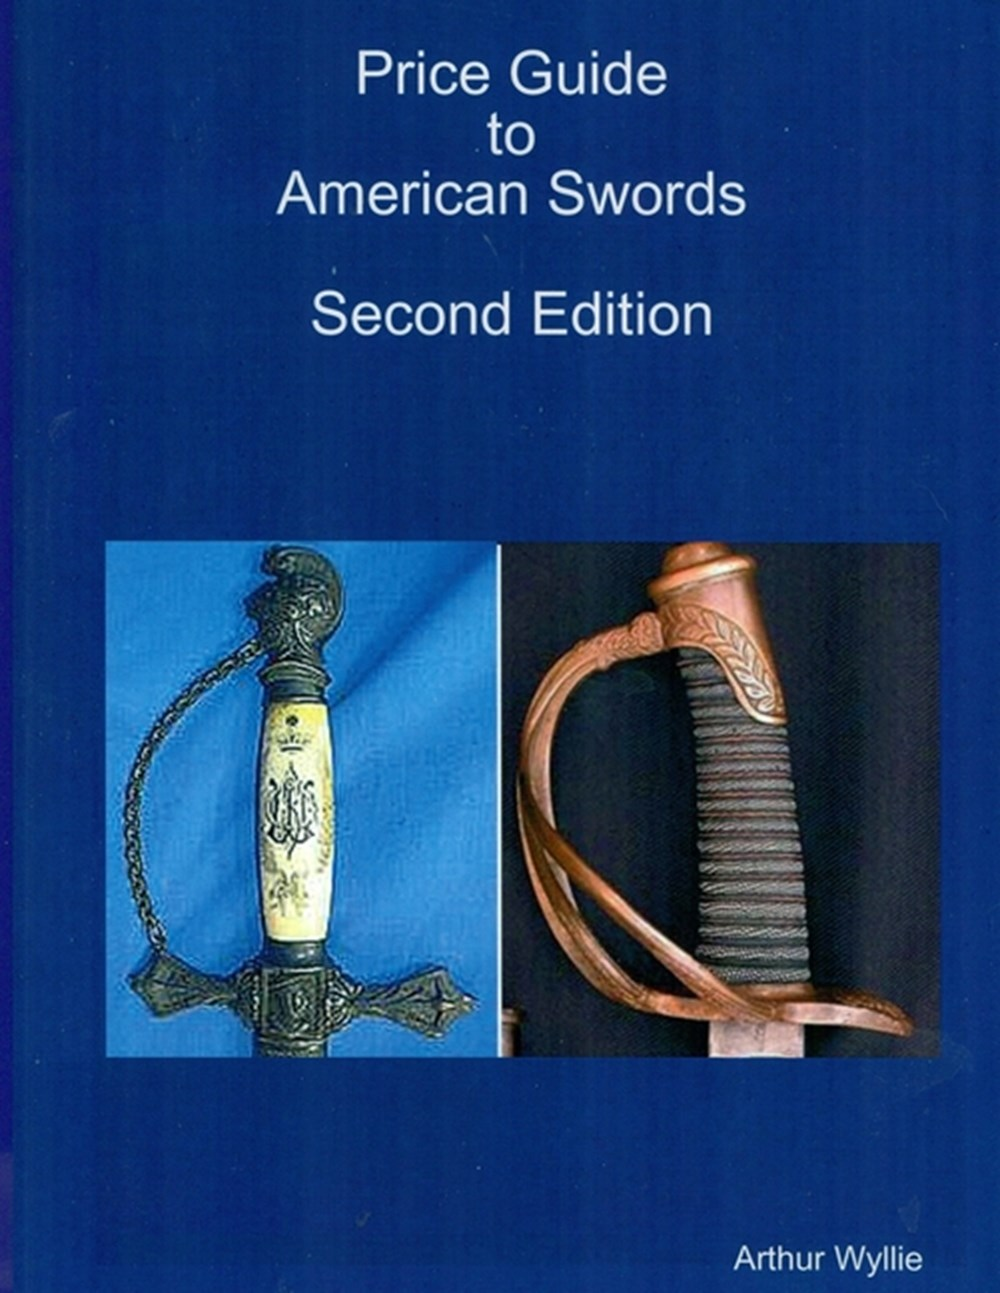 Price Guide to American Swords